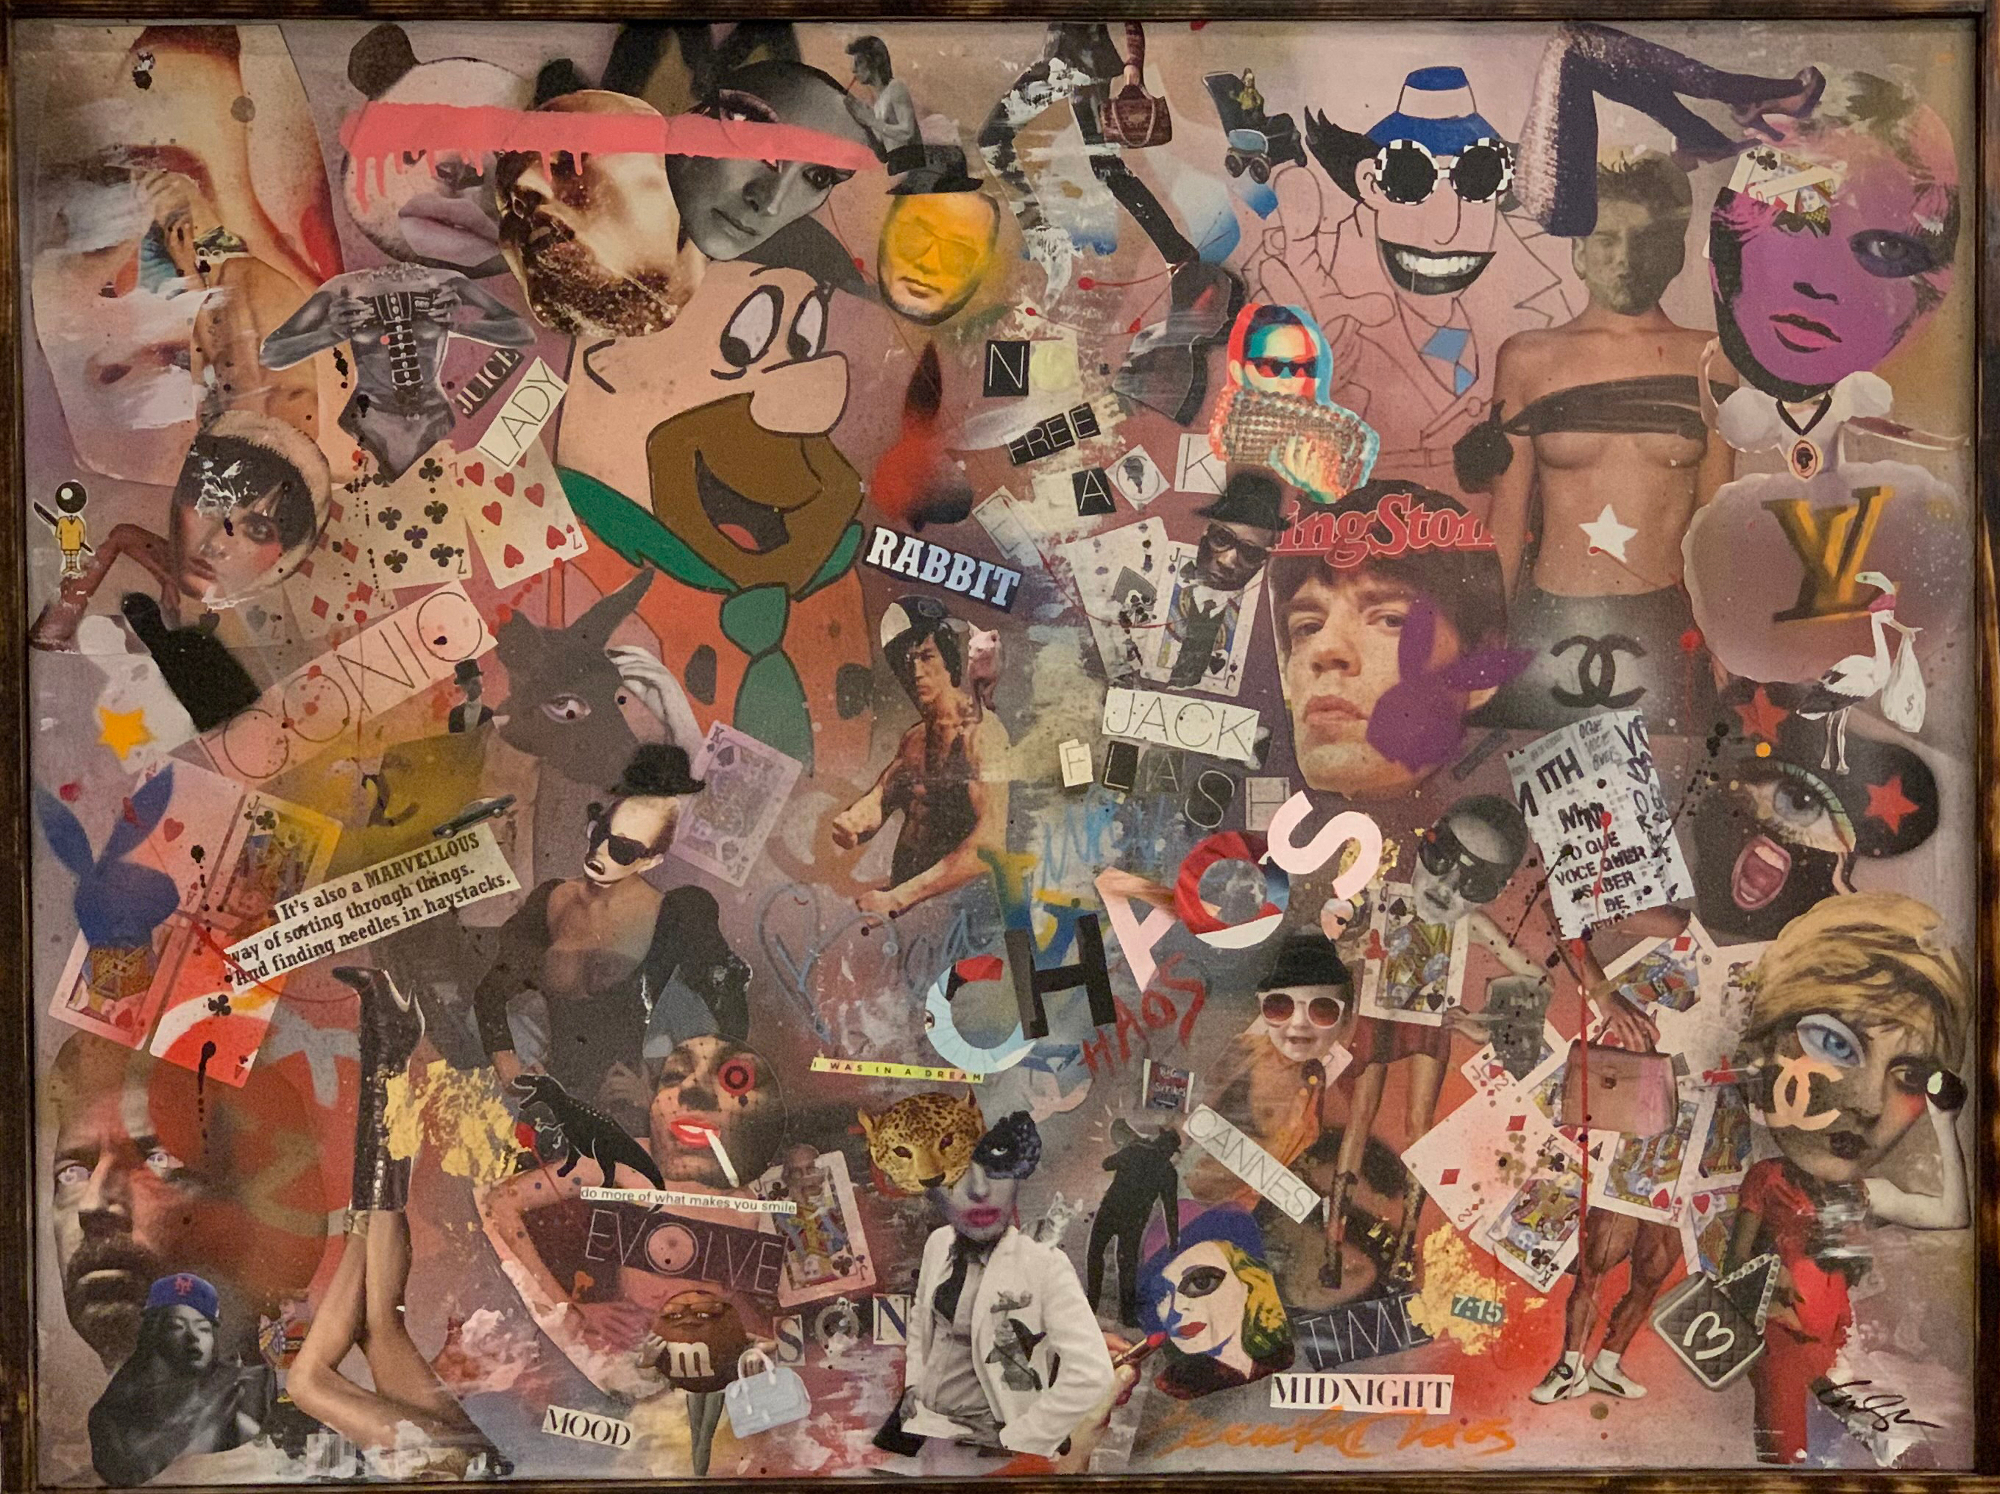 BEAUTIFUL CHAOS Flintstones Paradise artwork by Anderson Smith - art listed for sale on Artplode